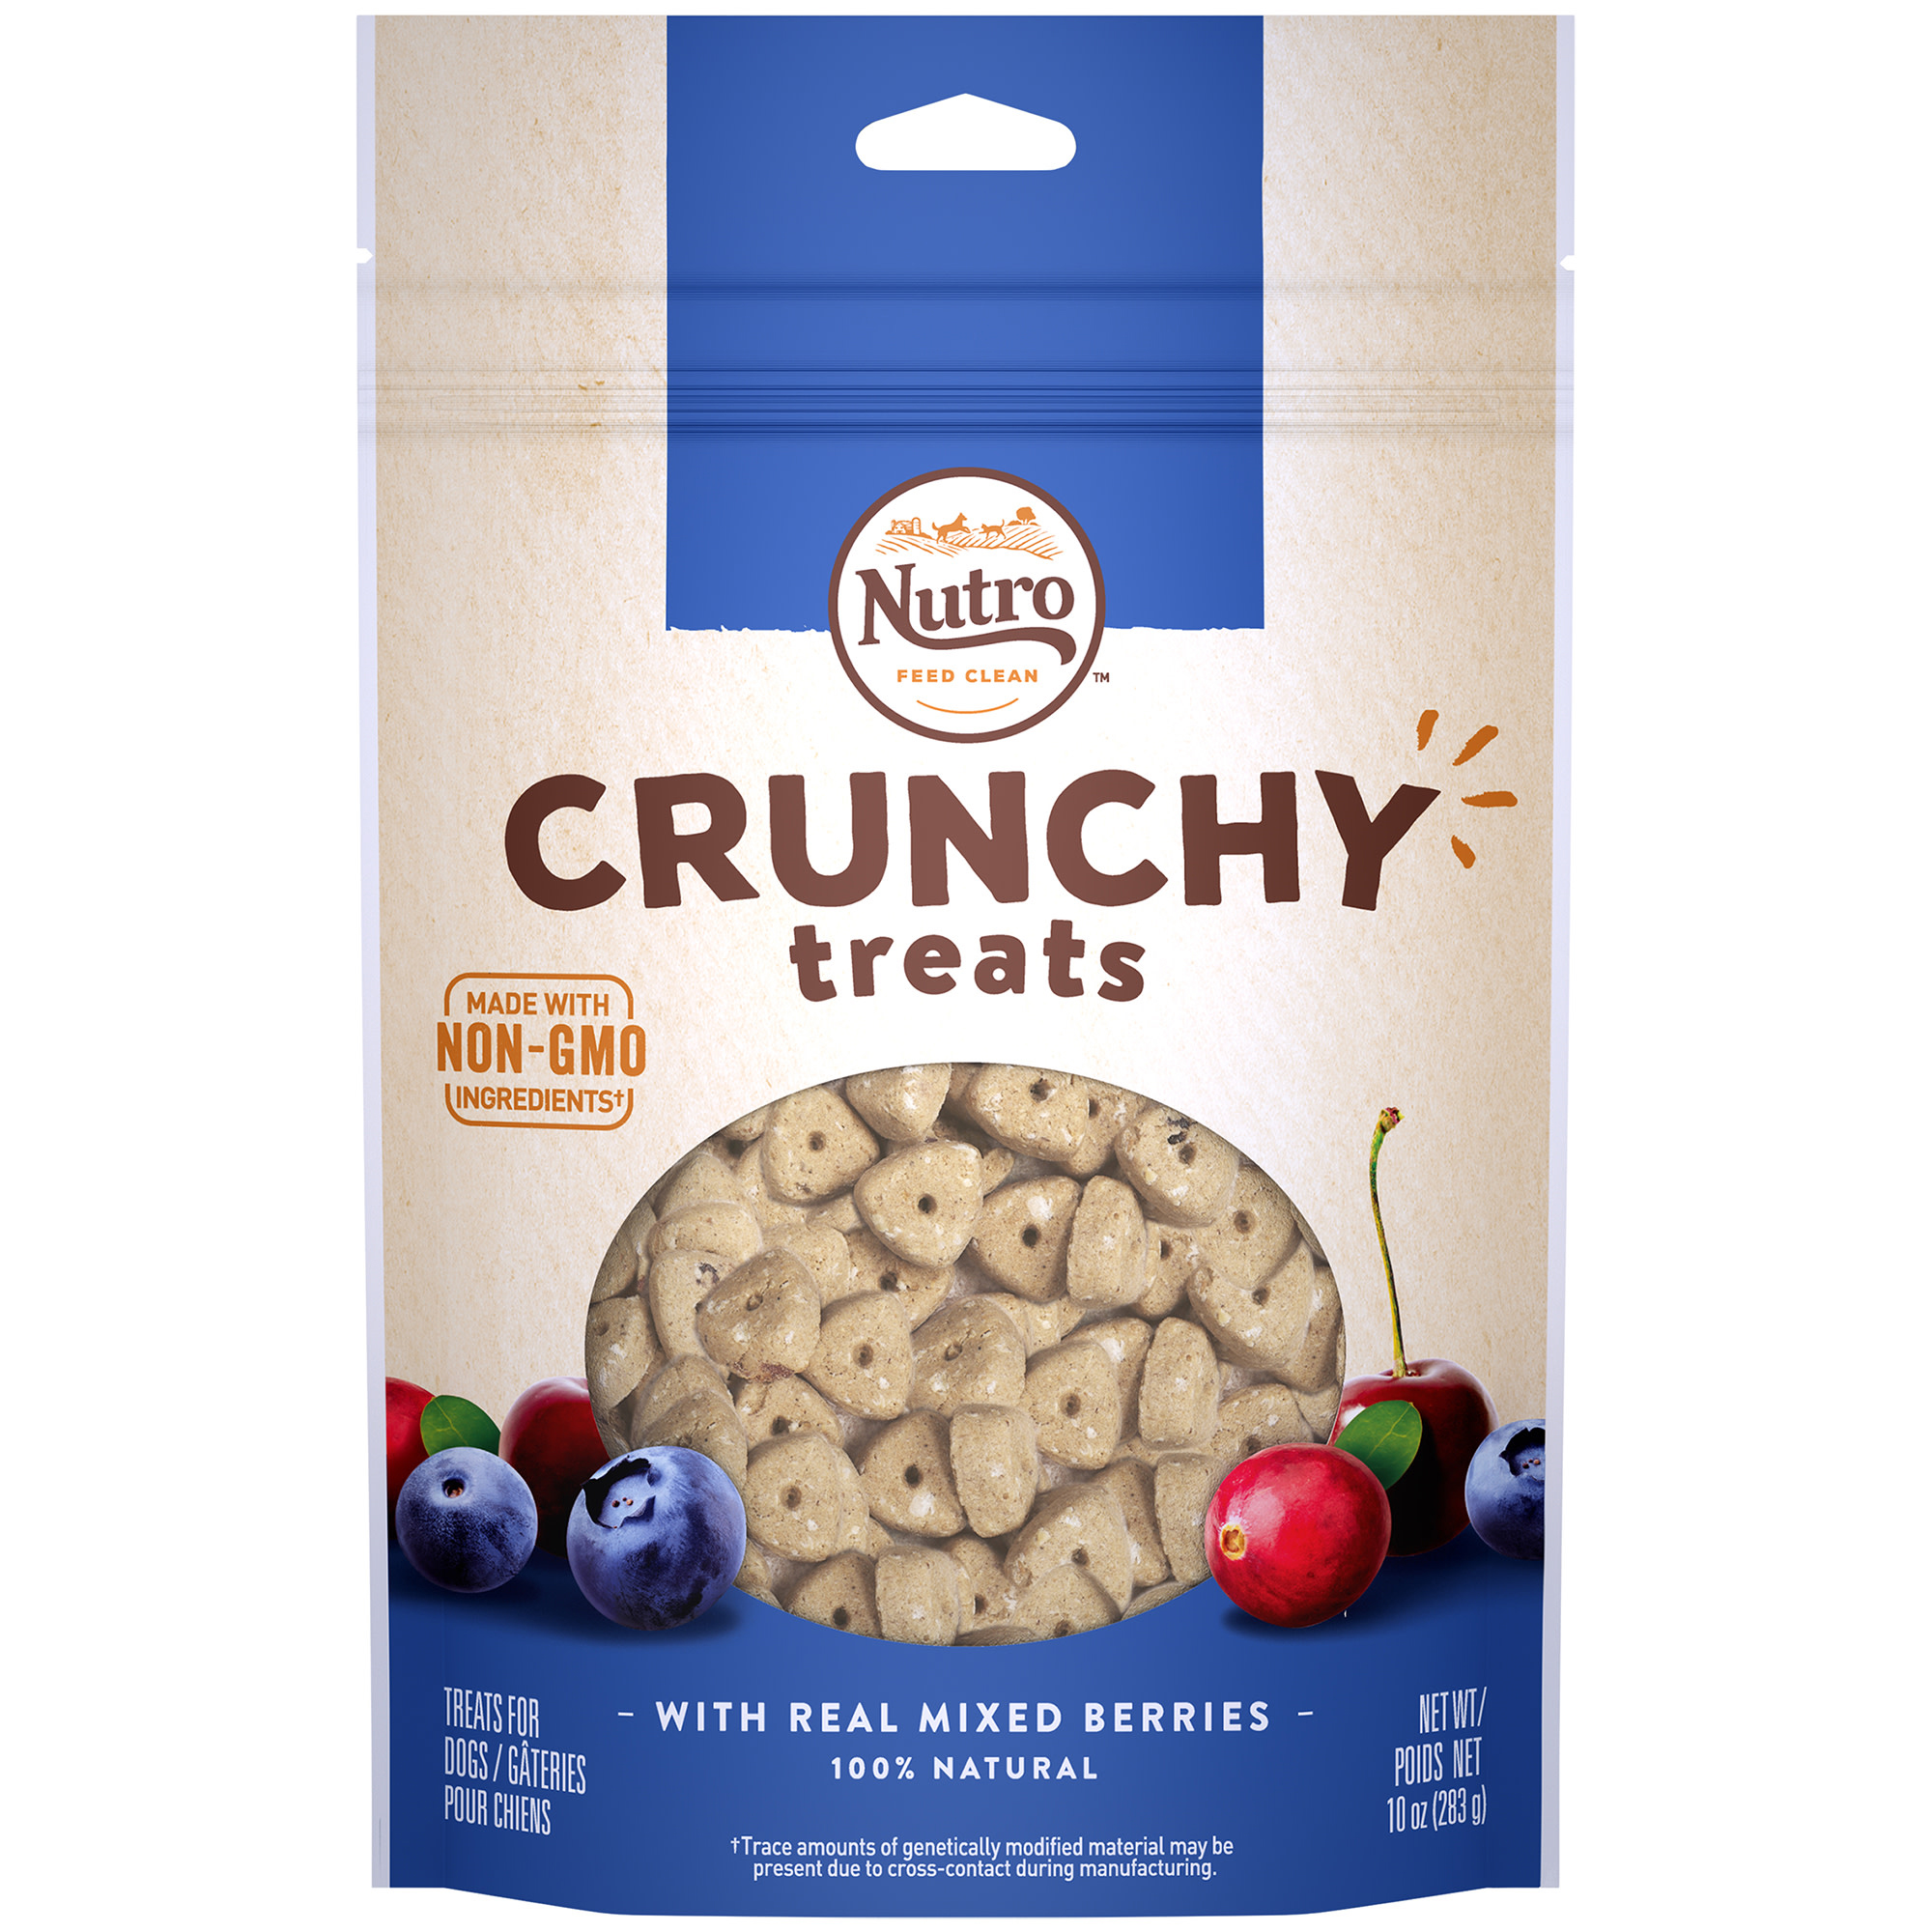 Nutro Crunchy Dog Treats with Real Mixed Berries, 10 Oz Bag by Mars Petcare Us